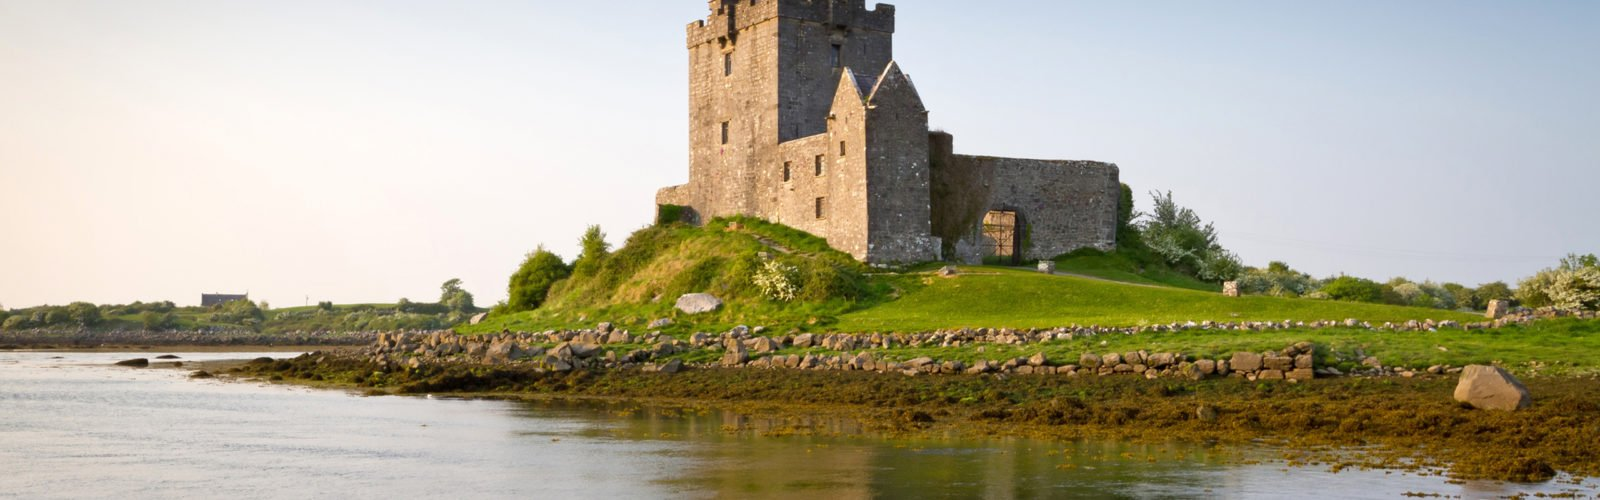 dunguaire-castle-galway-ireland